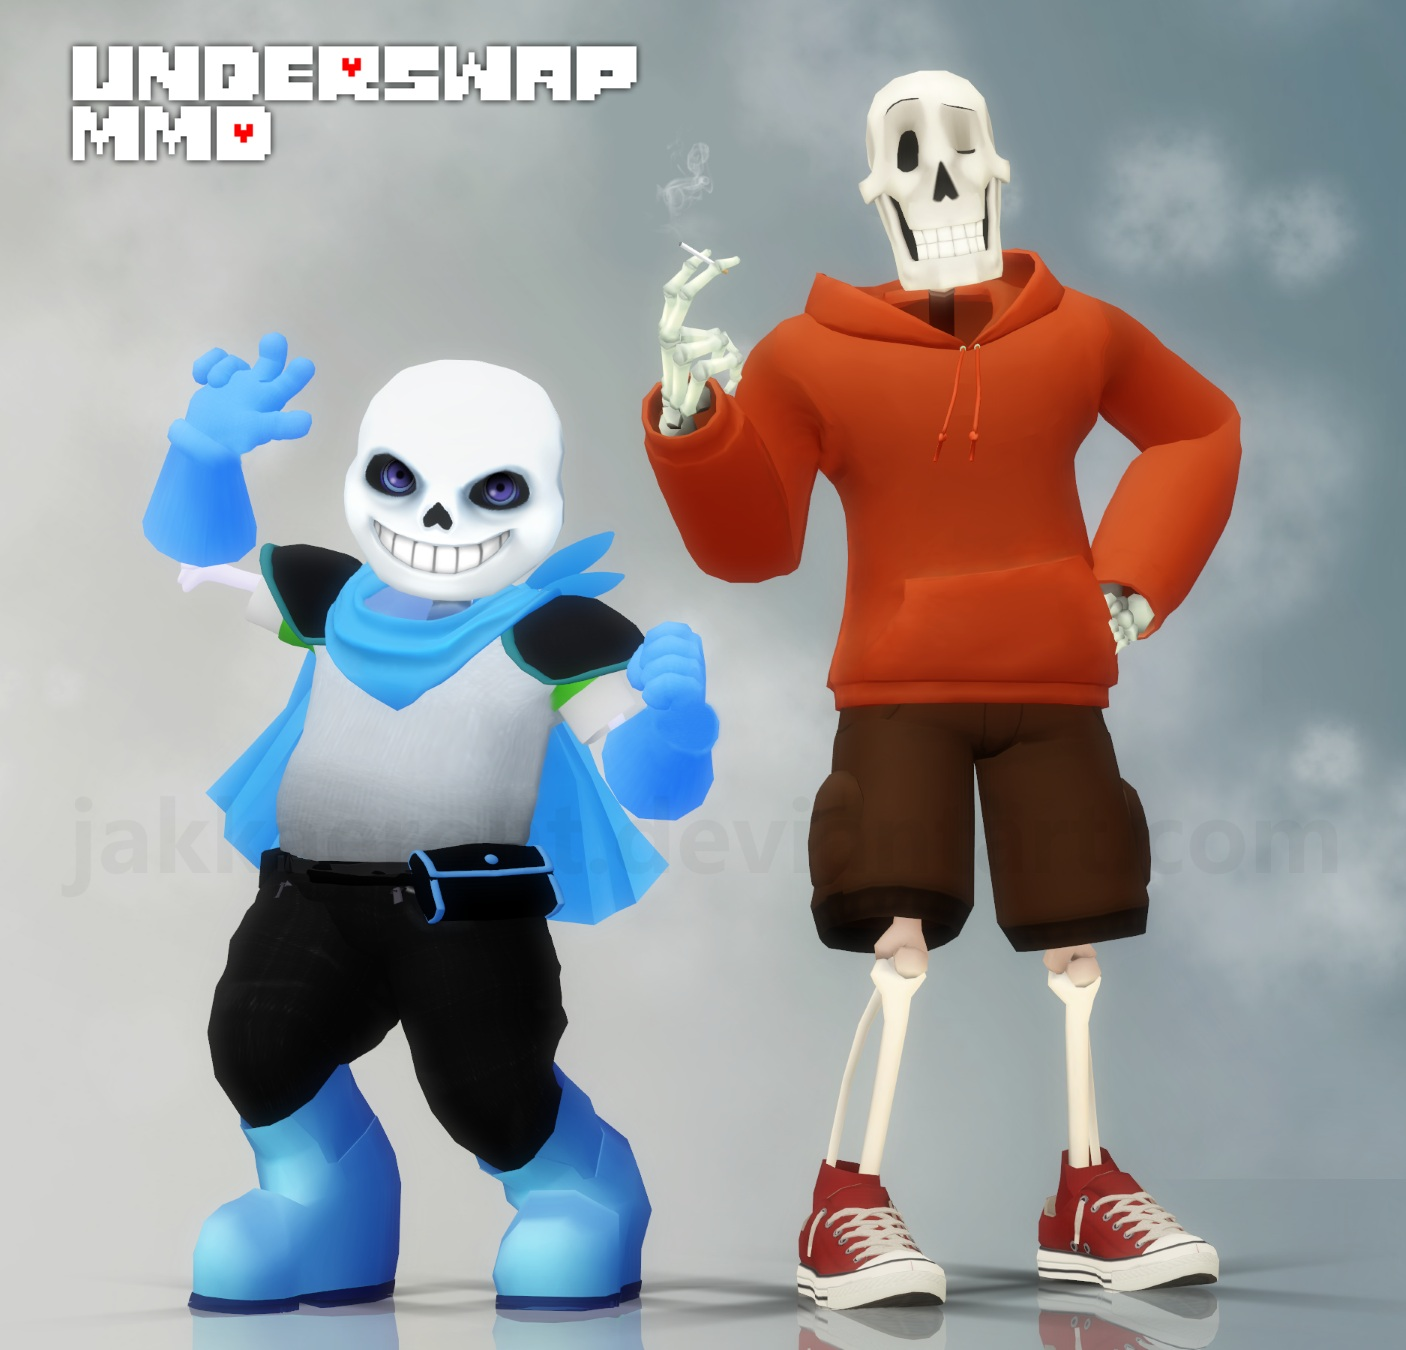 How to install sans undertale skin download sans undertale skin -  Undertale Au 3 Underswap Mmd Sans N Papyrus By Jakkaeront